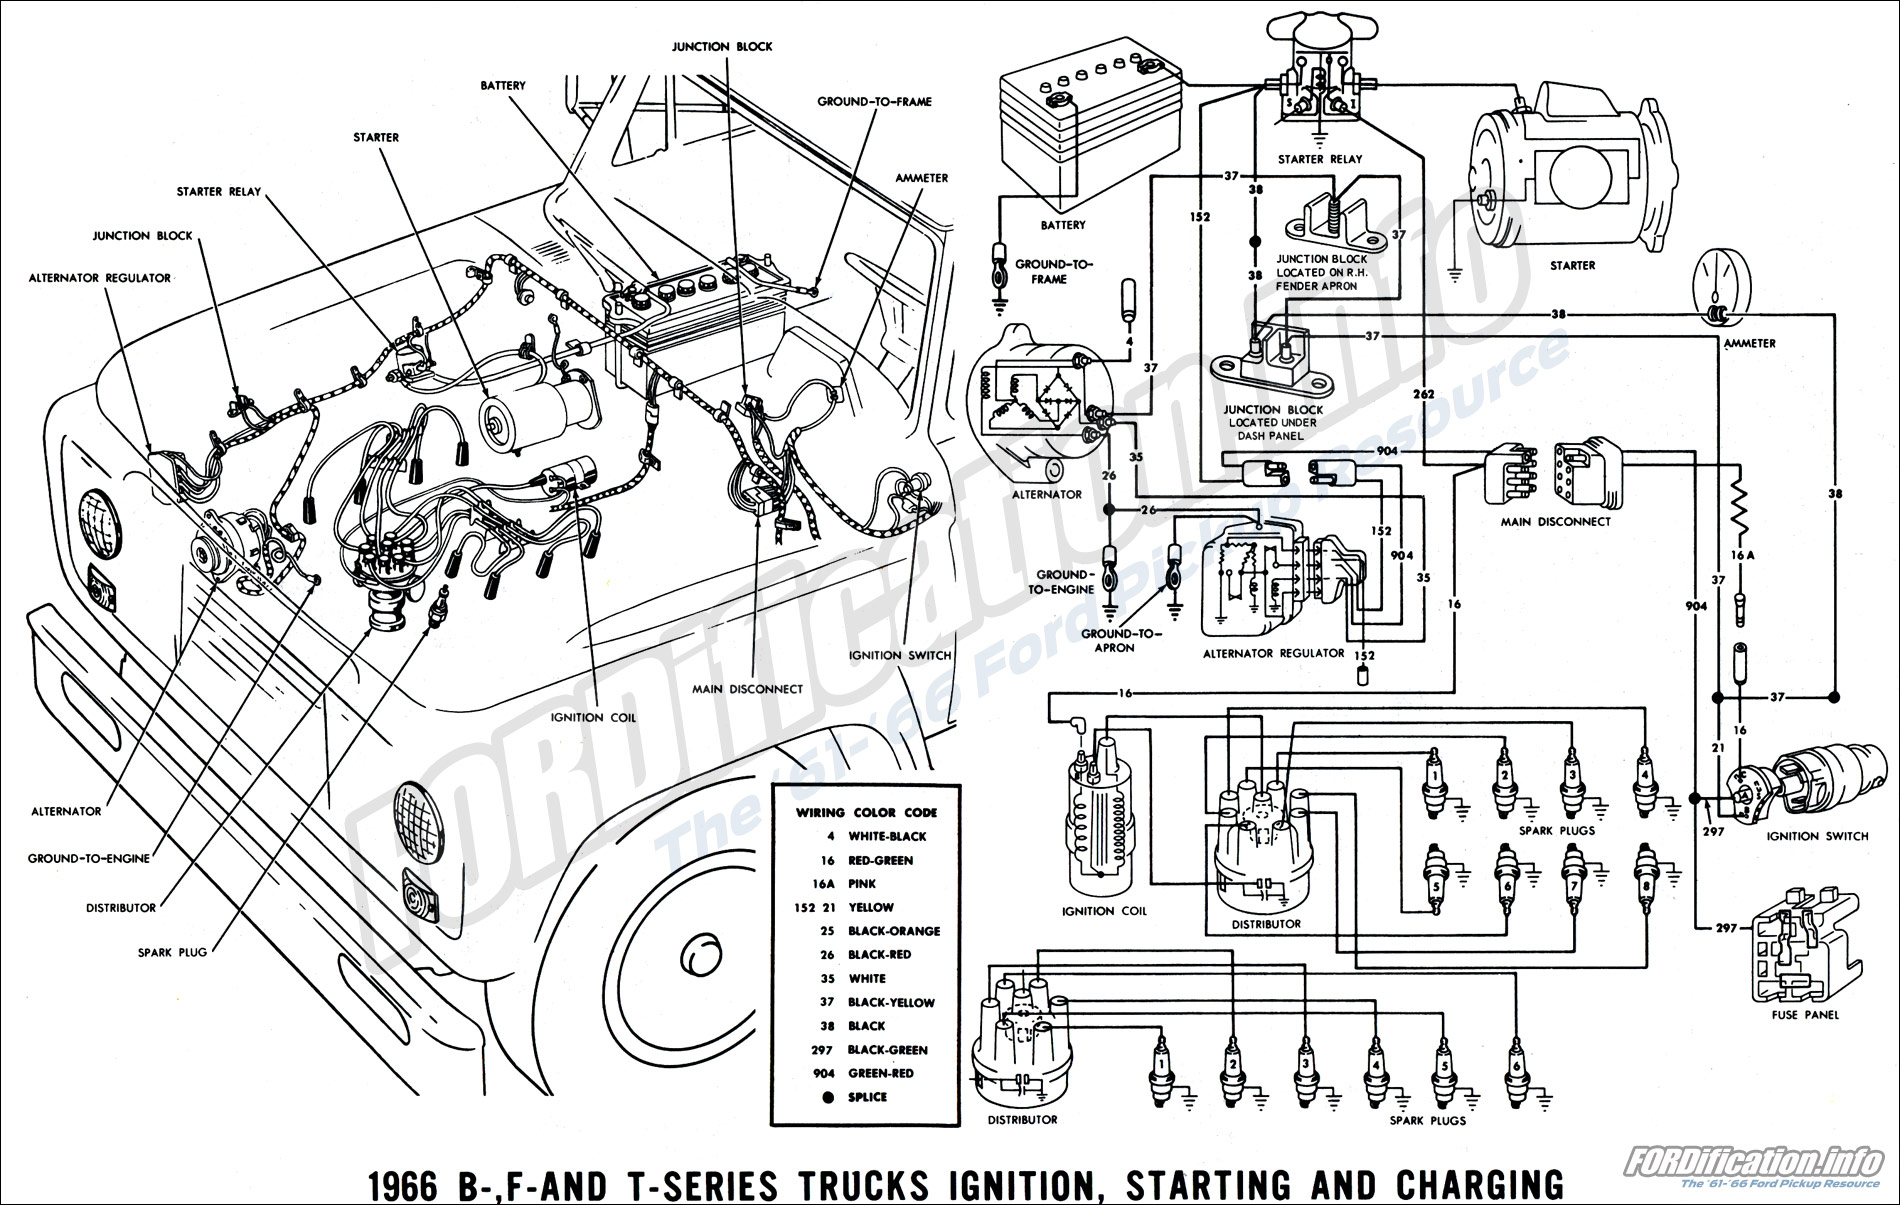 [SCHEMATICS_48DE]  66 Ford Truck F250 Alternator Wiring Diagram - 6600 Ford Tractor Wiring  Diagram for Wiring Diagram Schematics | 1966 Ford F250 Wiring Diagram |  | Wiring Diagram Schematics